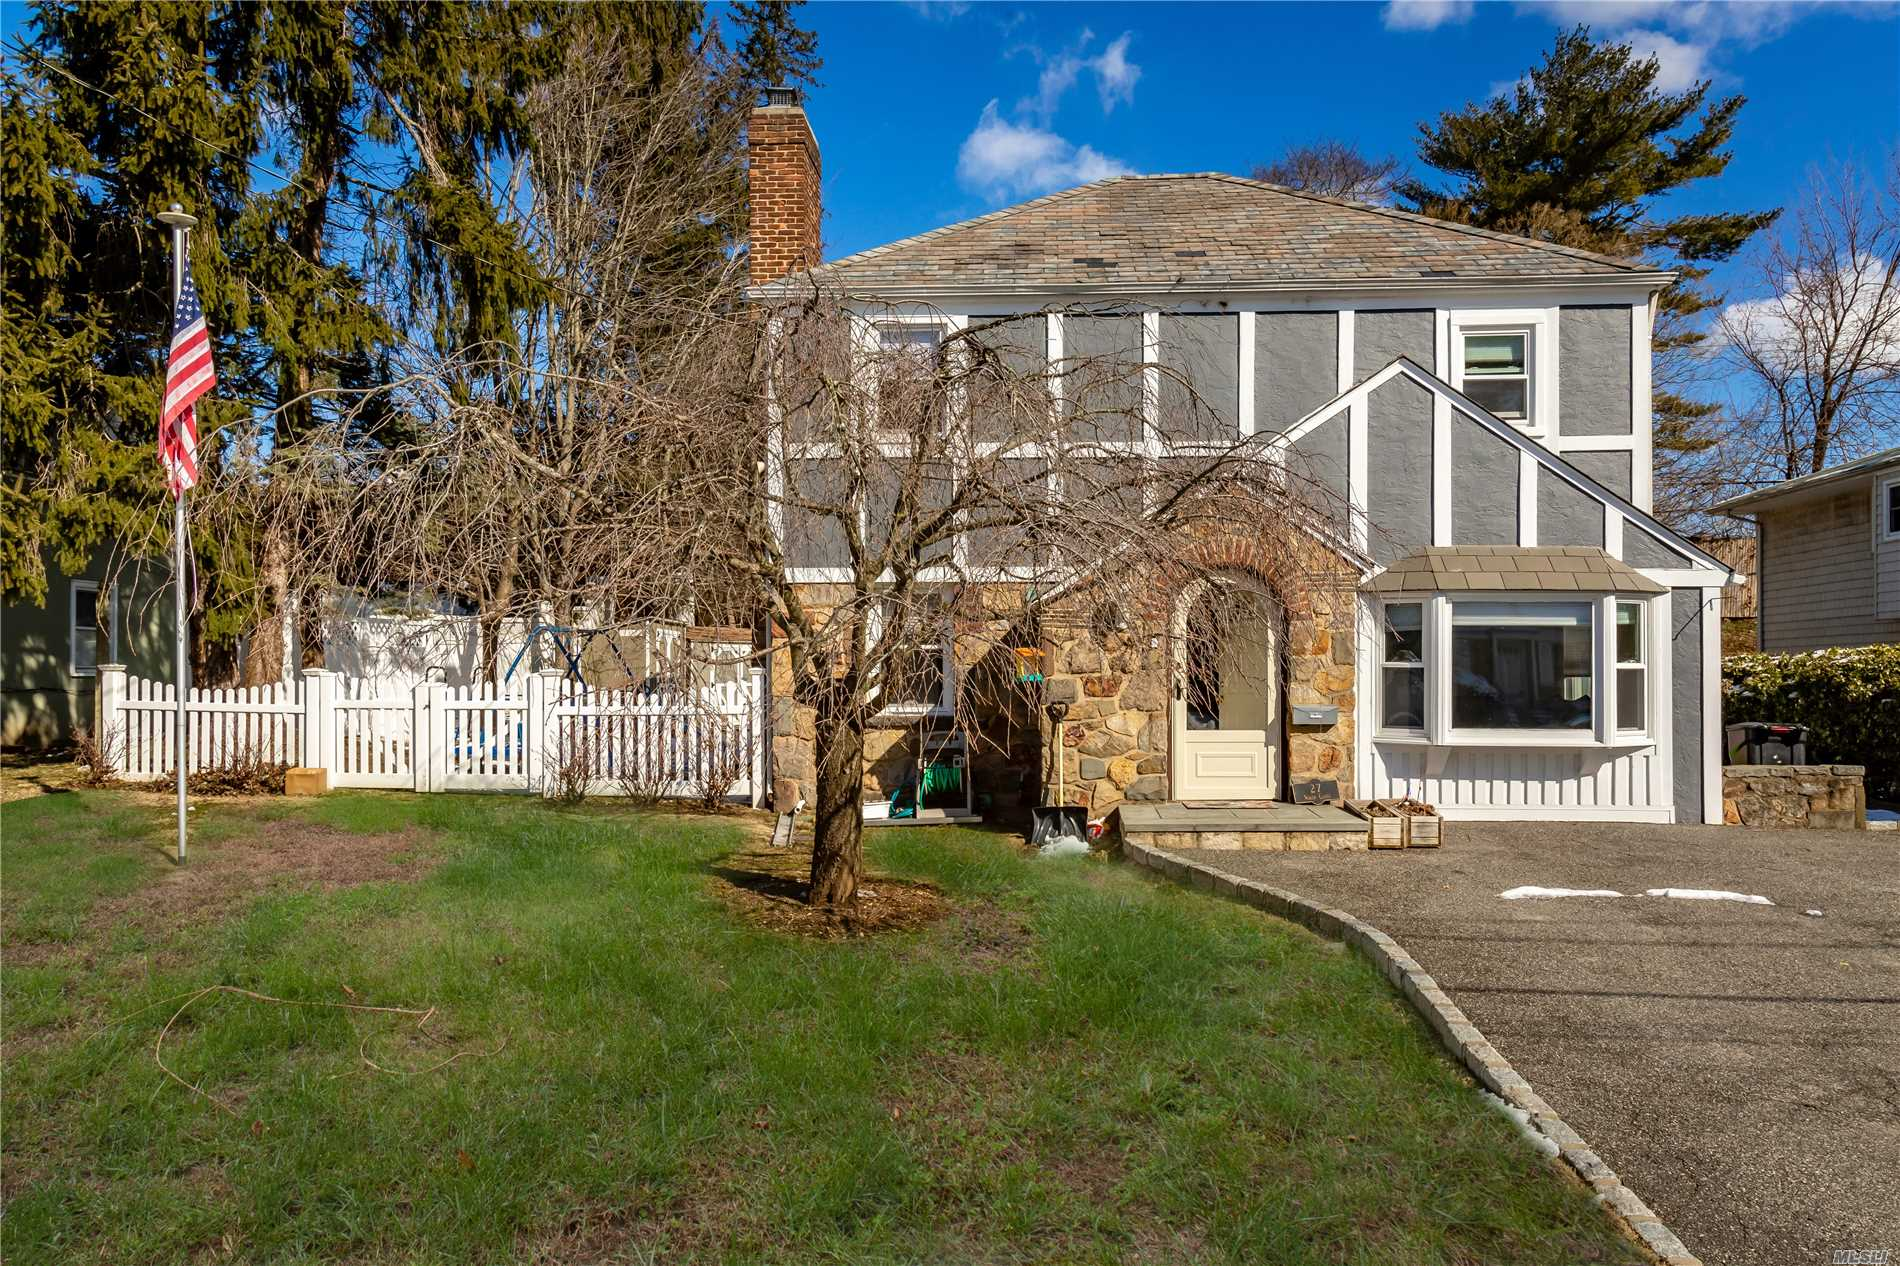 Location, Location, Location! Prestigious Roslyn S. D.! Beautifully Renovated Colonial Set On Professionally Landscaped Property. Inviting Living Room With Expansive Yard Views. Gourmet Eat-In-Kitchen. Three Bedrooms, Great Closet Space Throughout. Great Layout. Low Taxes.